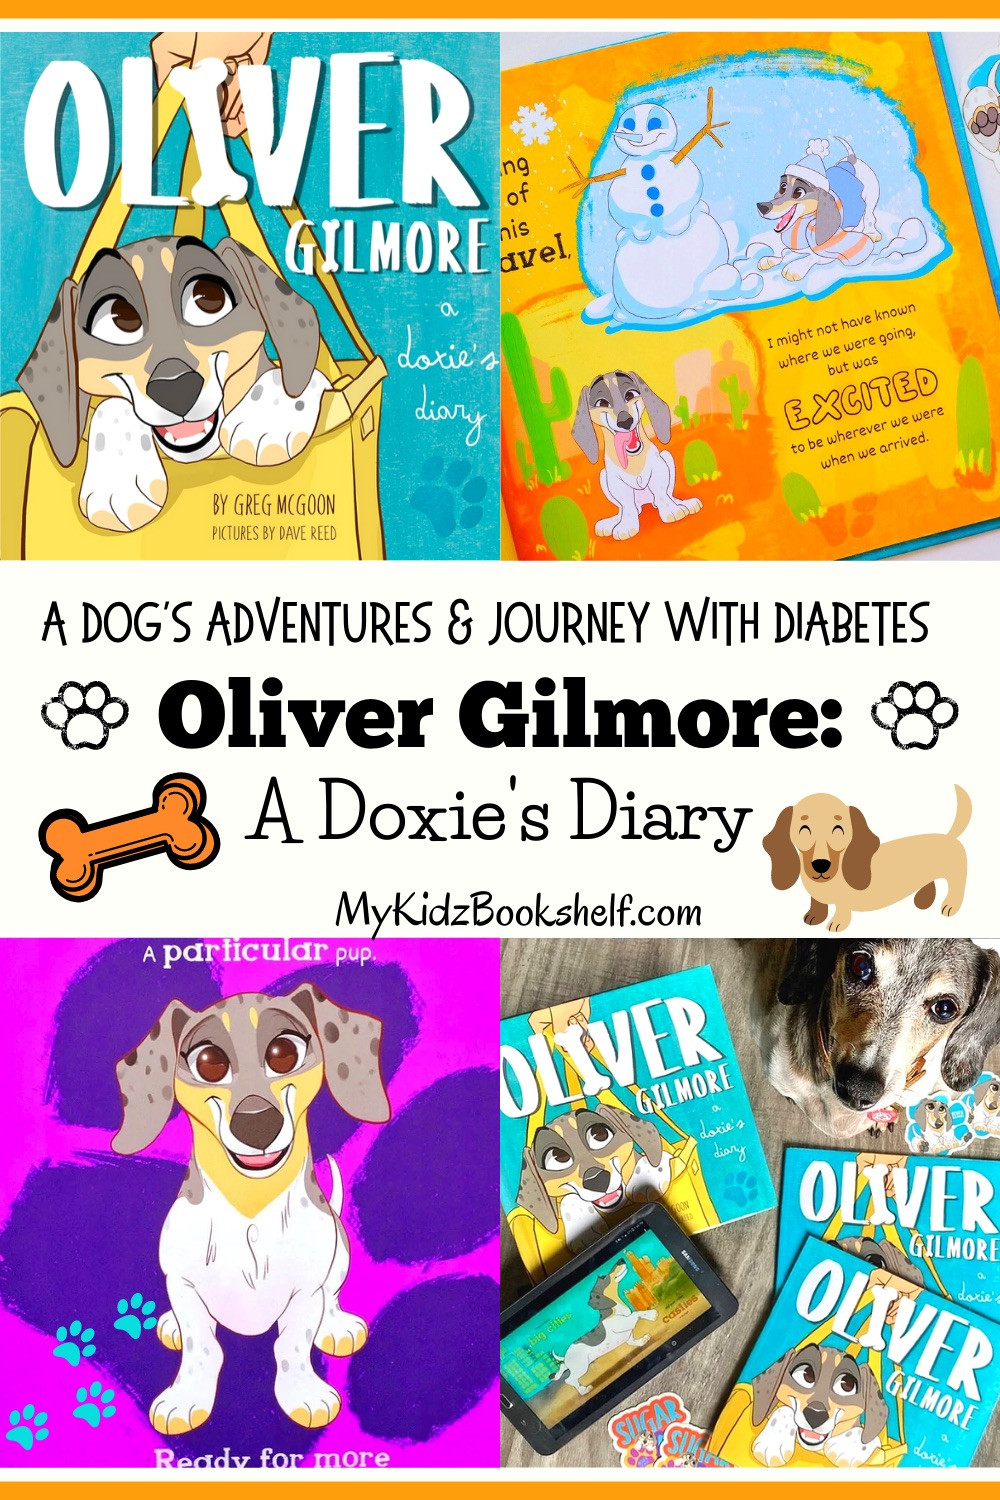 Oliver Gilmore: A Doxie's Diary picture book with dachshund on cover book about dog's adventures and canine diabetes